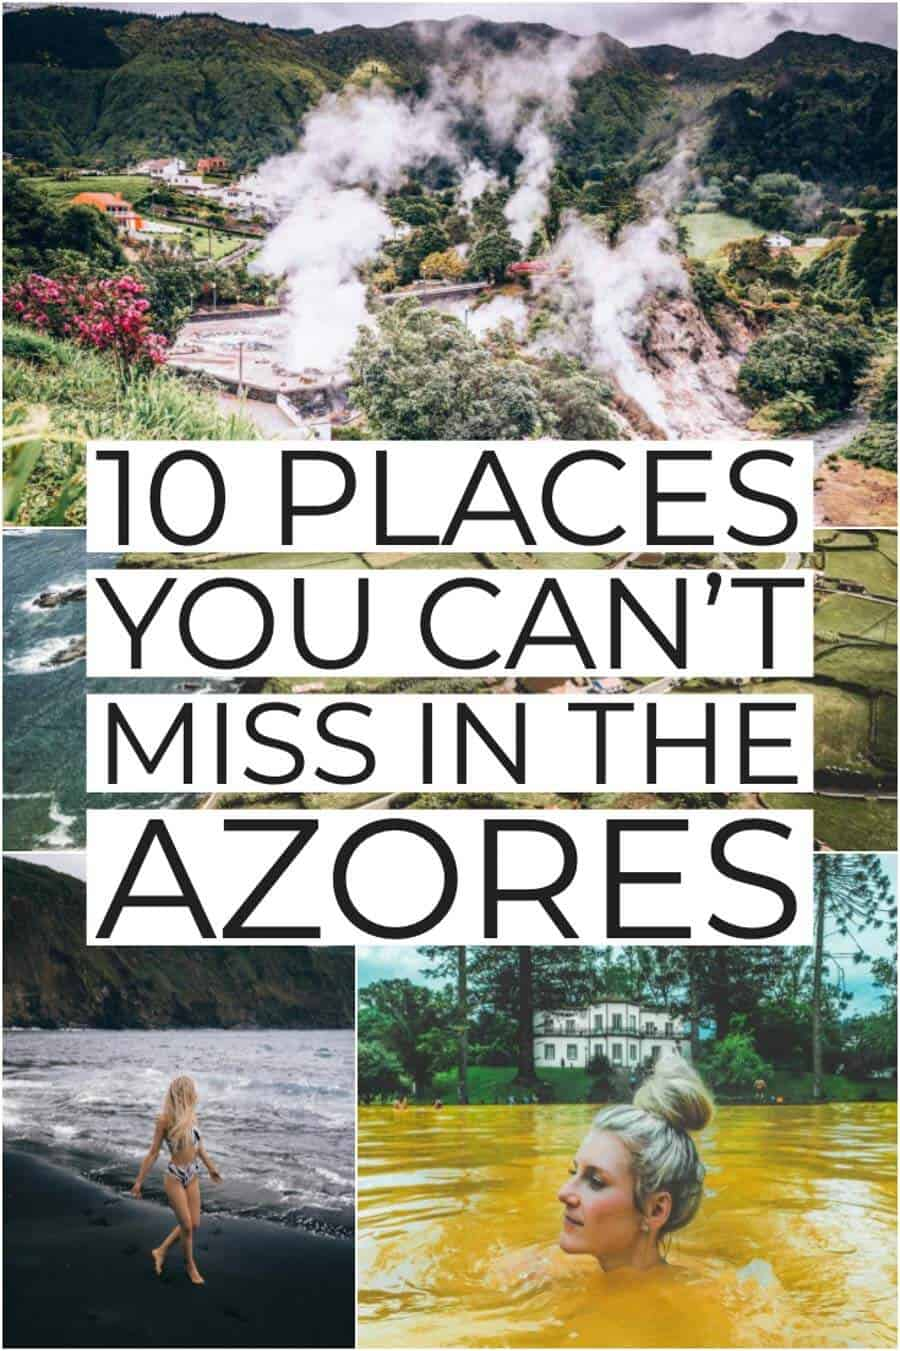 TOP 10 THINGS TO DO IN THE AZORES